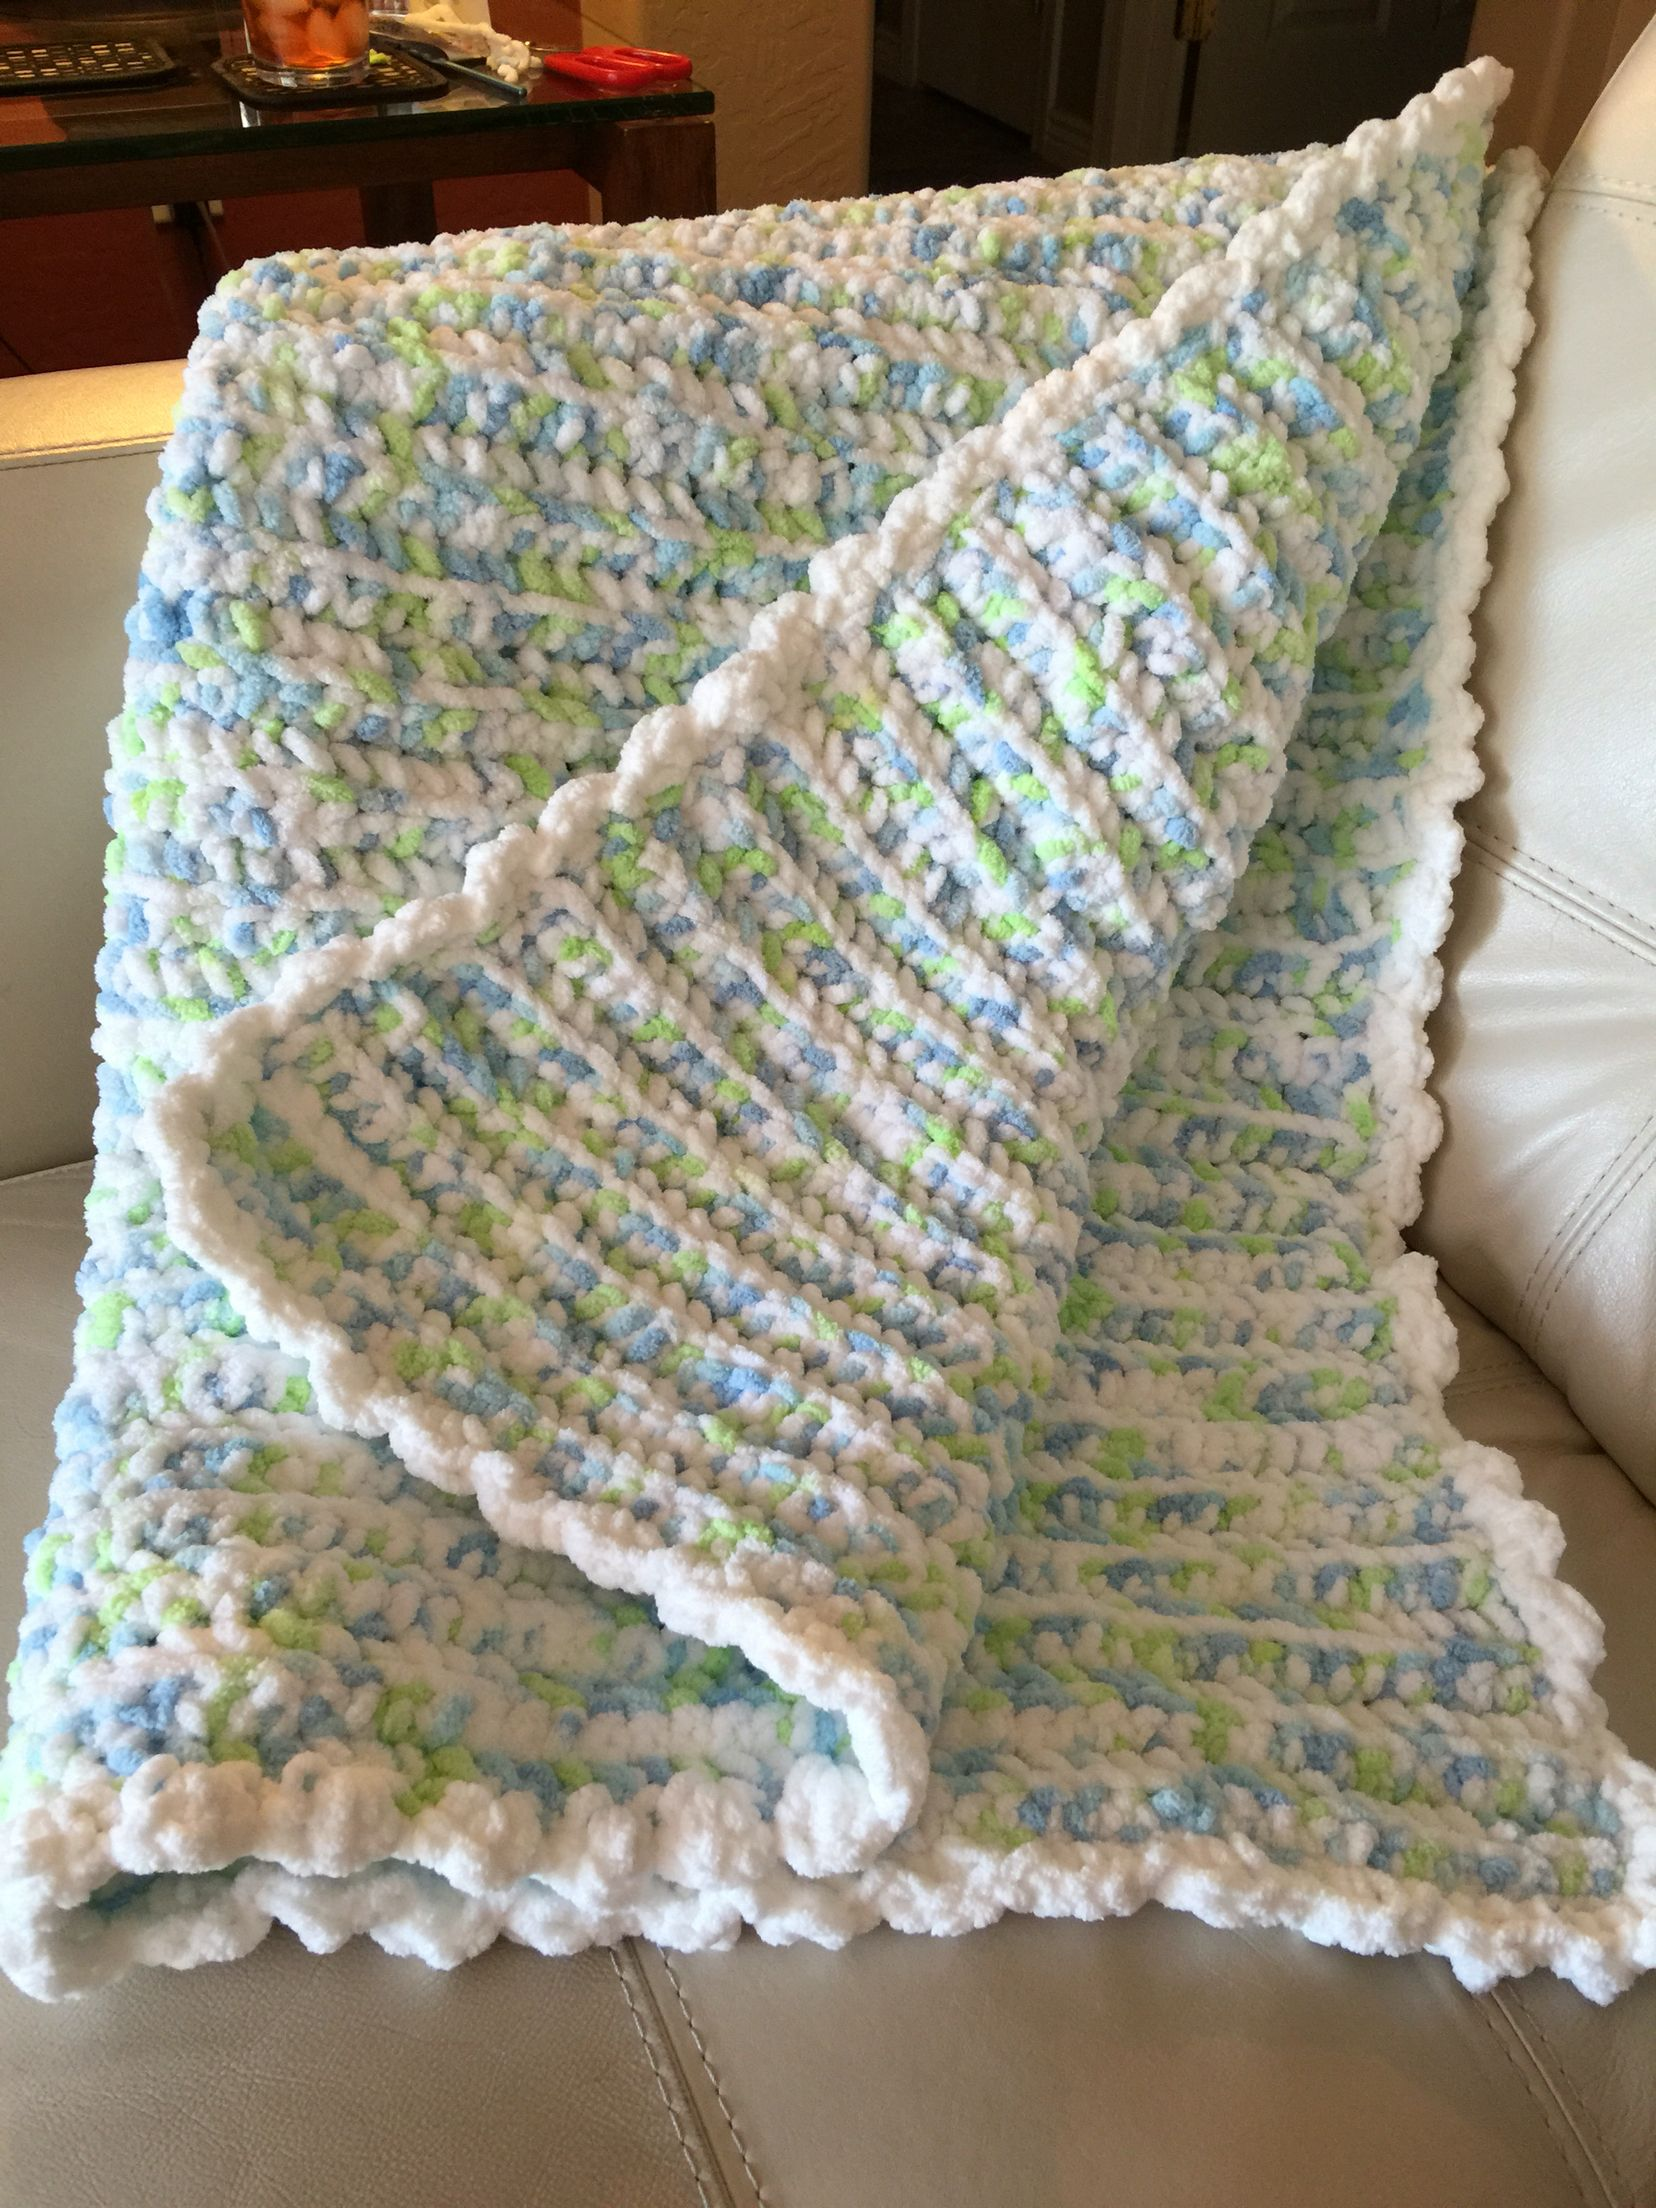 Crocheted Baby Quilt With Bernat Baby Blanket Yarn Easy Crochet Baby Blanket Baby Afghan Crochet Patterns Baby Yarn Crochet